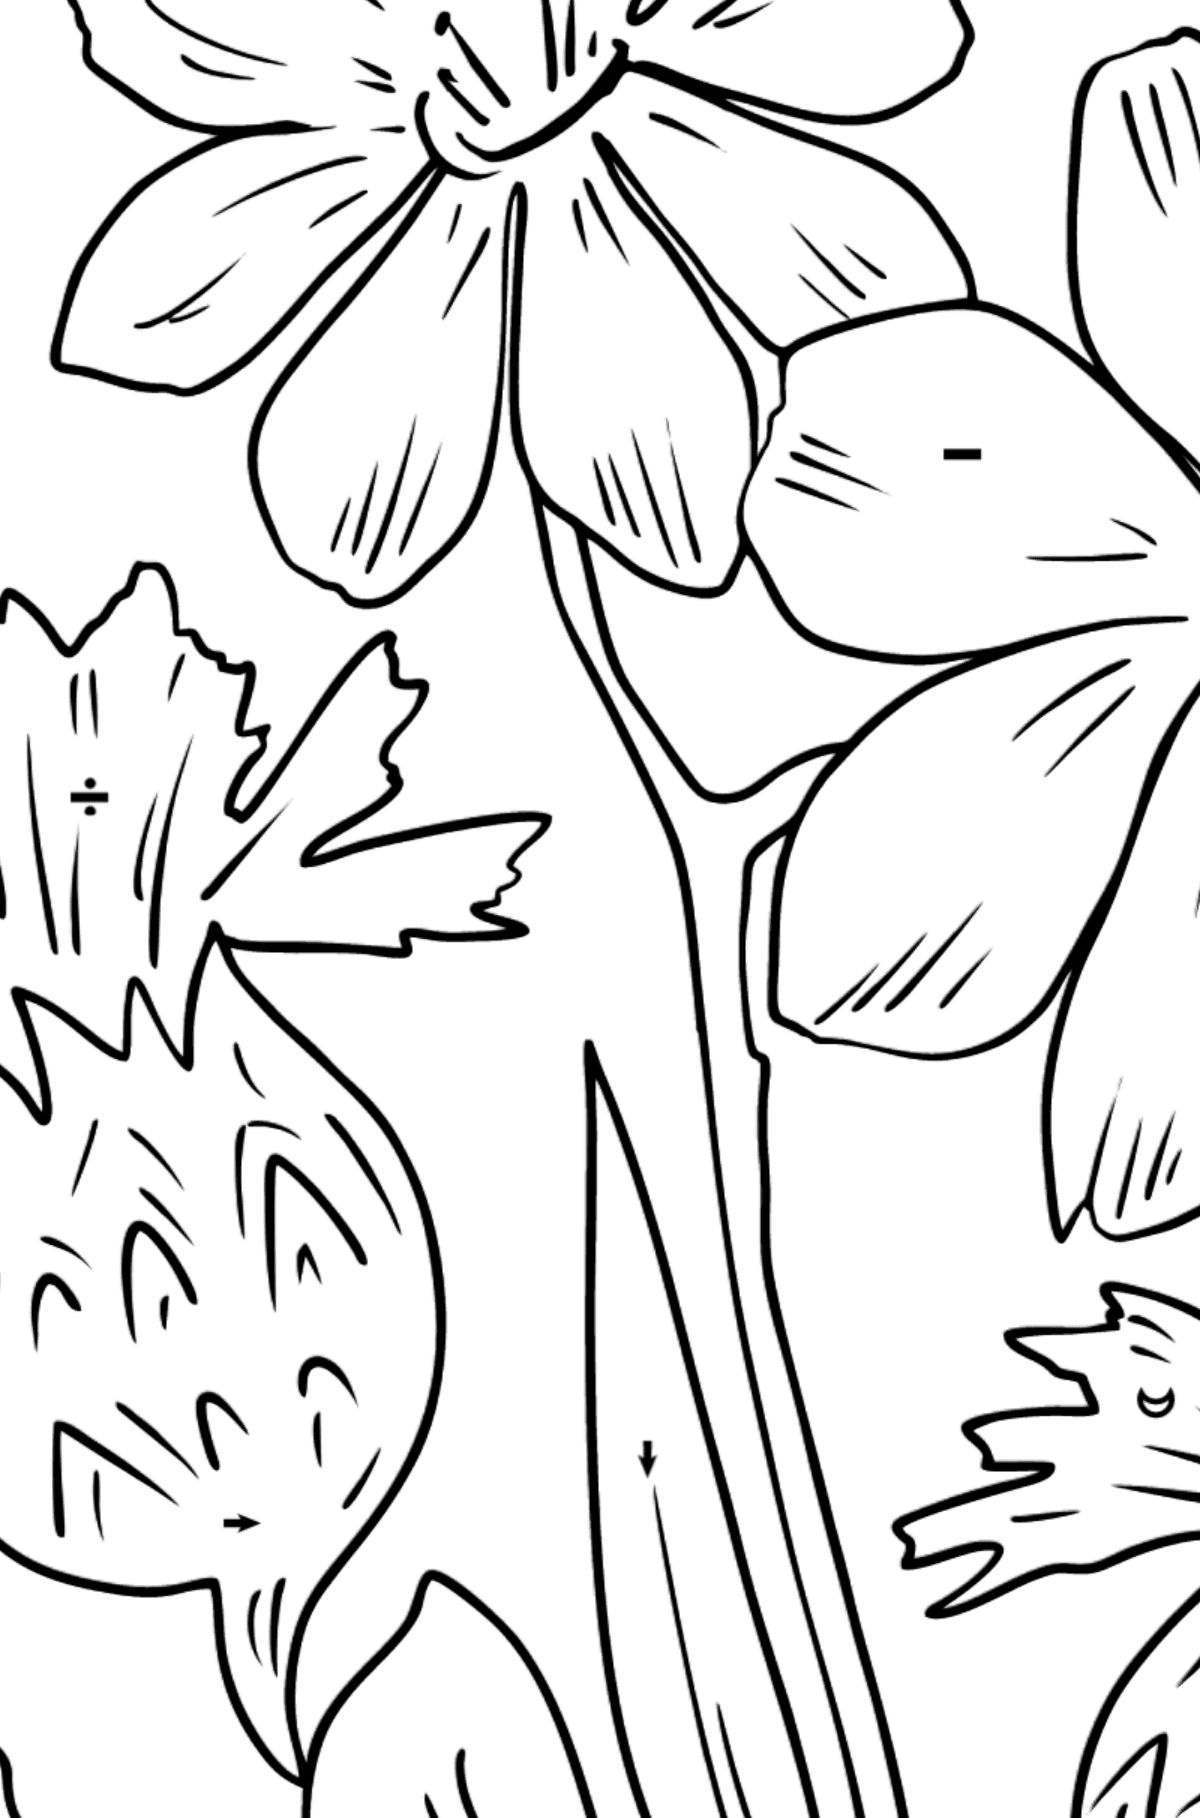 Flower Coloring Page - flowers in the meadow - Coloring by Symbols for Kids